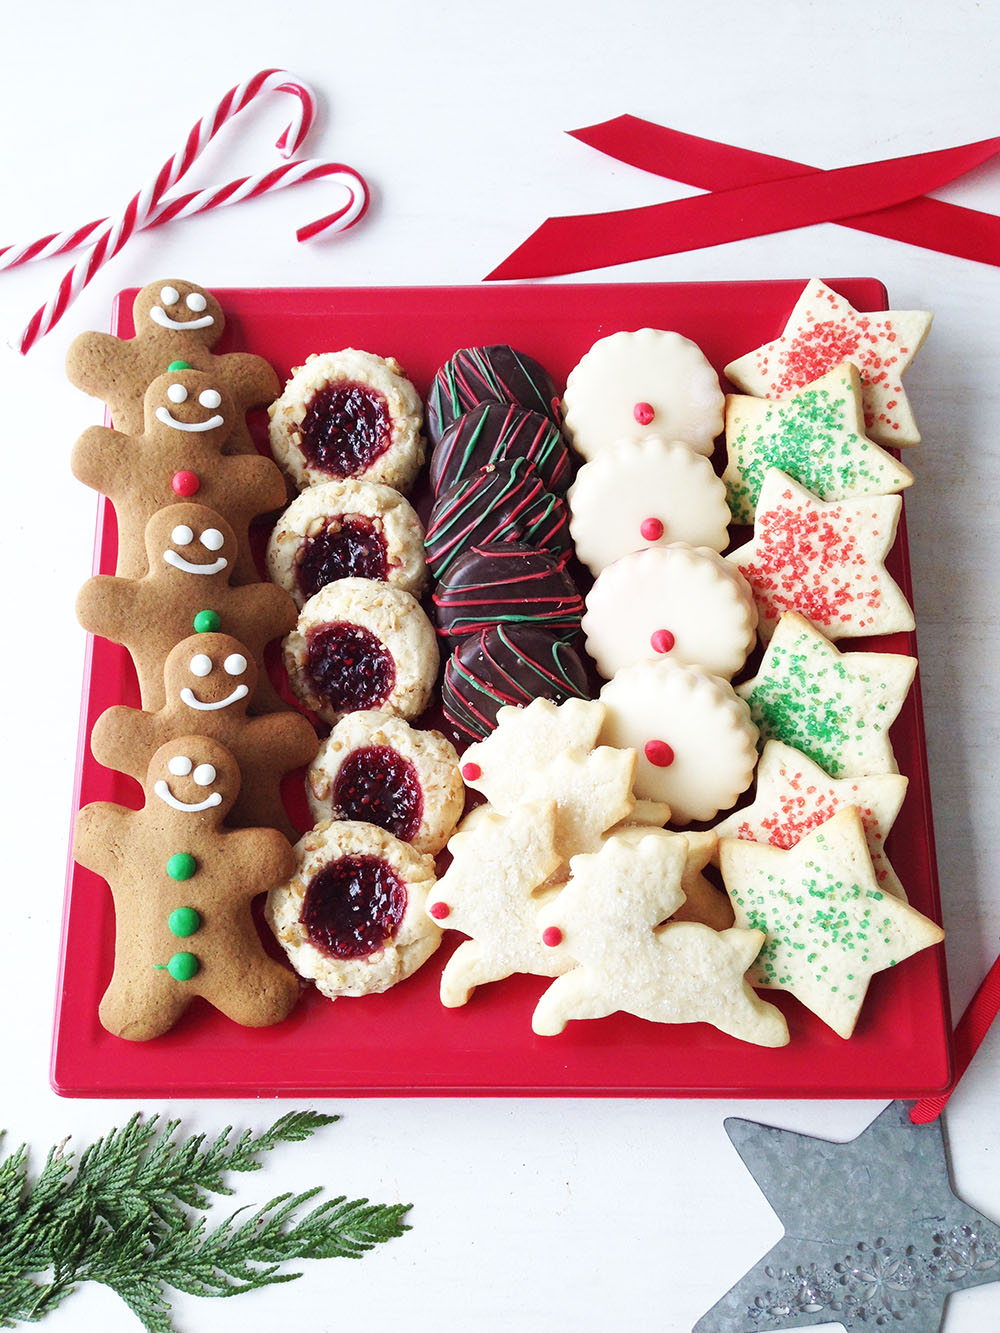 Assorted Christmas Cookie Platter - 30 Cookies - $45